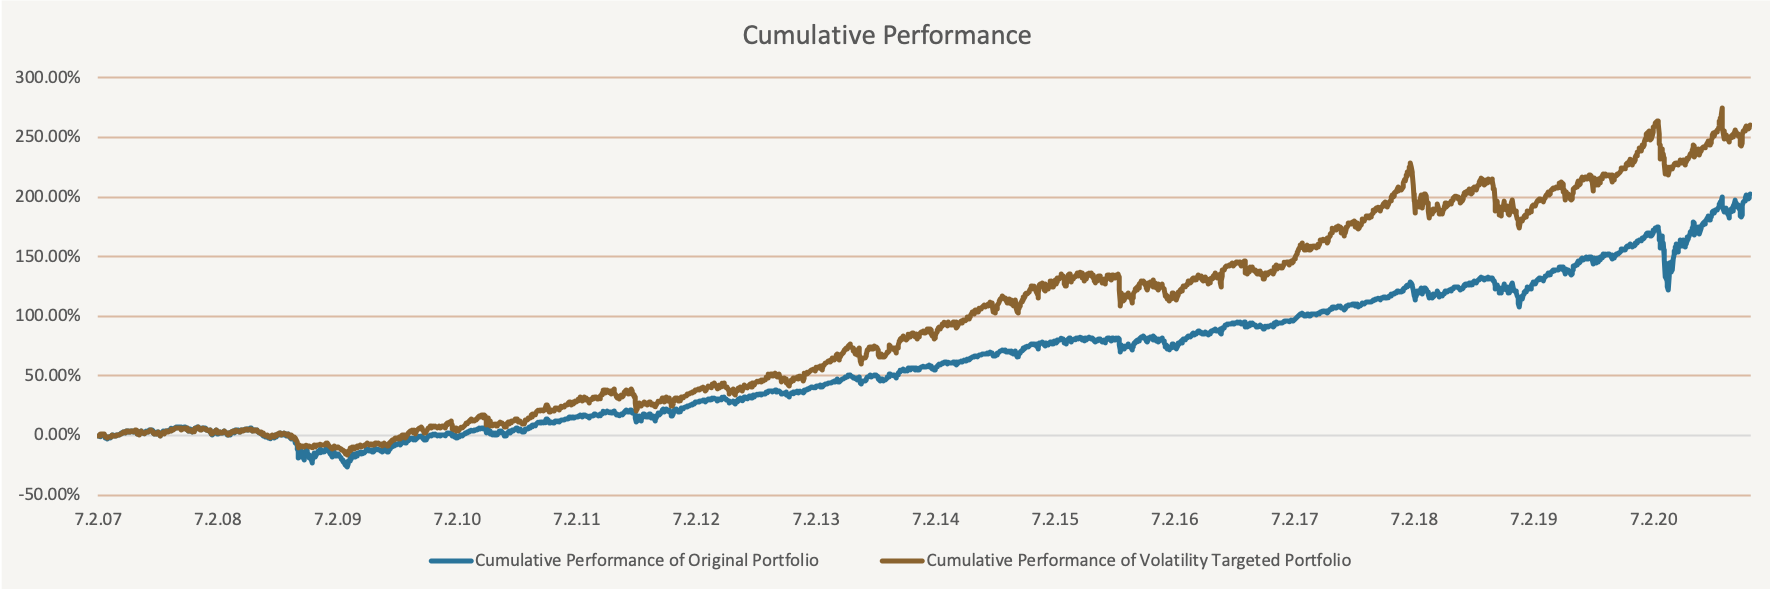 Tactical Volatility targeting - equity curves